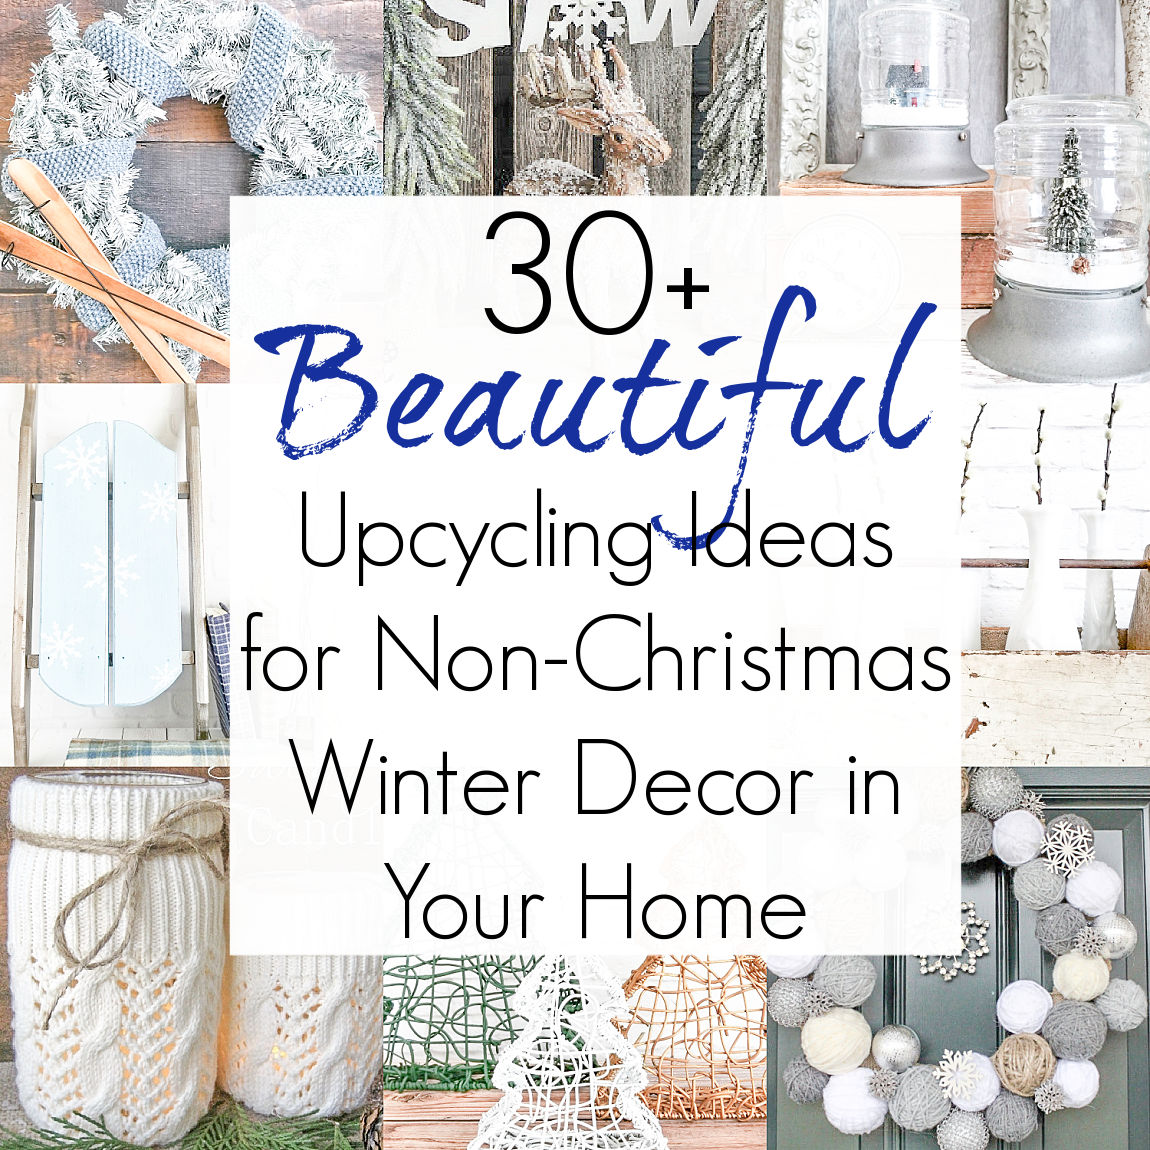 30+ Upcycling Ideas for Non-Christmas Winter Decorations